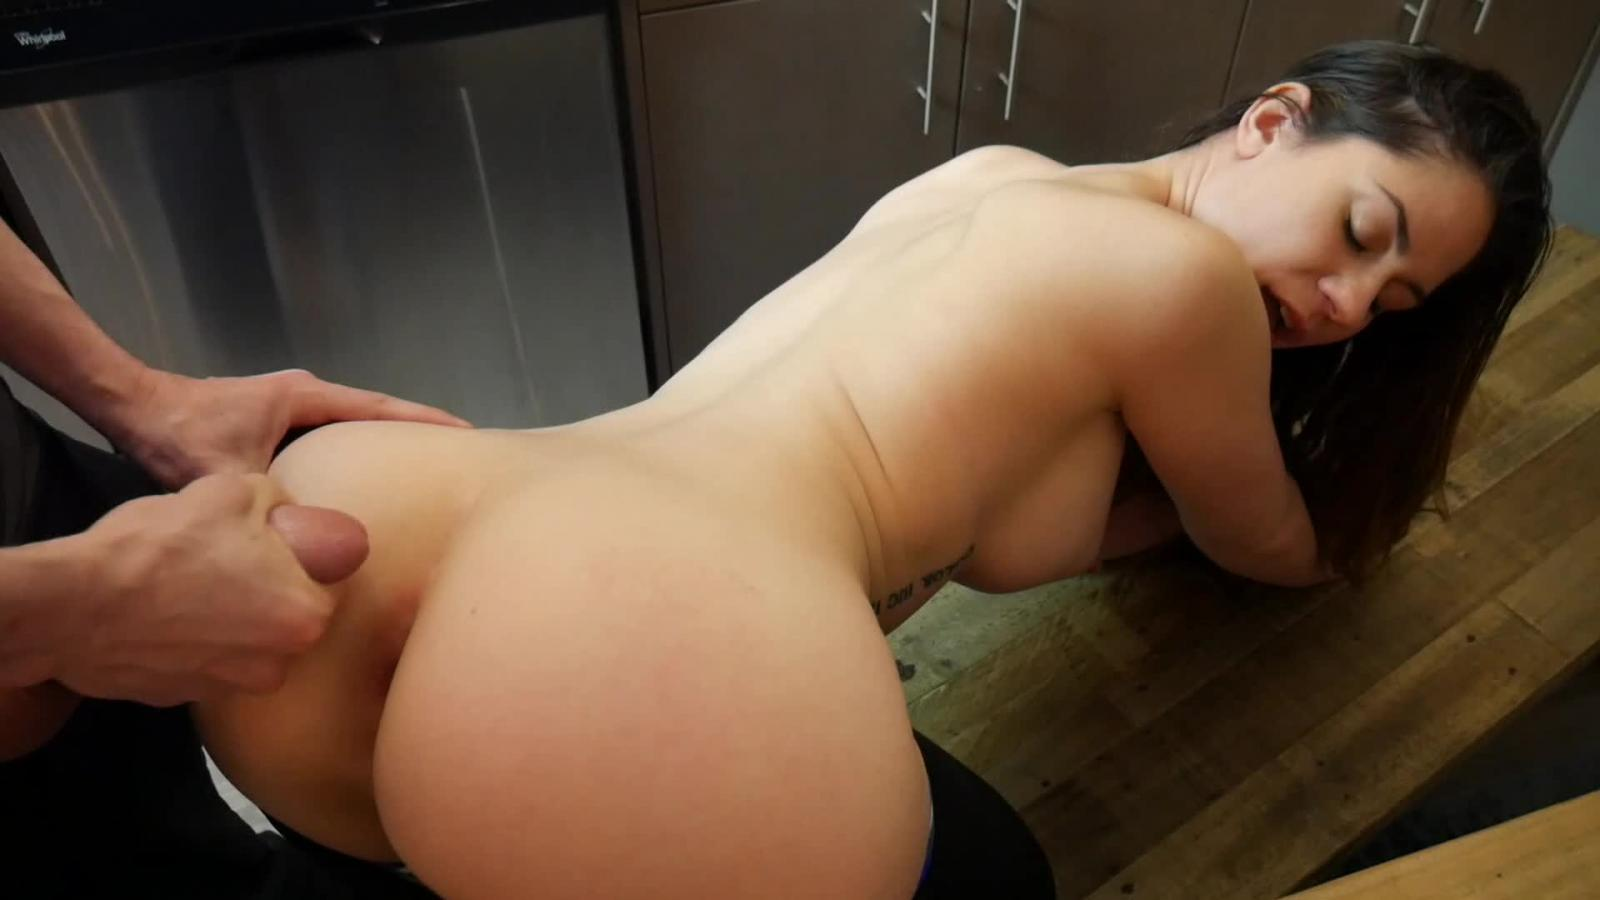 Porn girl blackmails brother